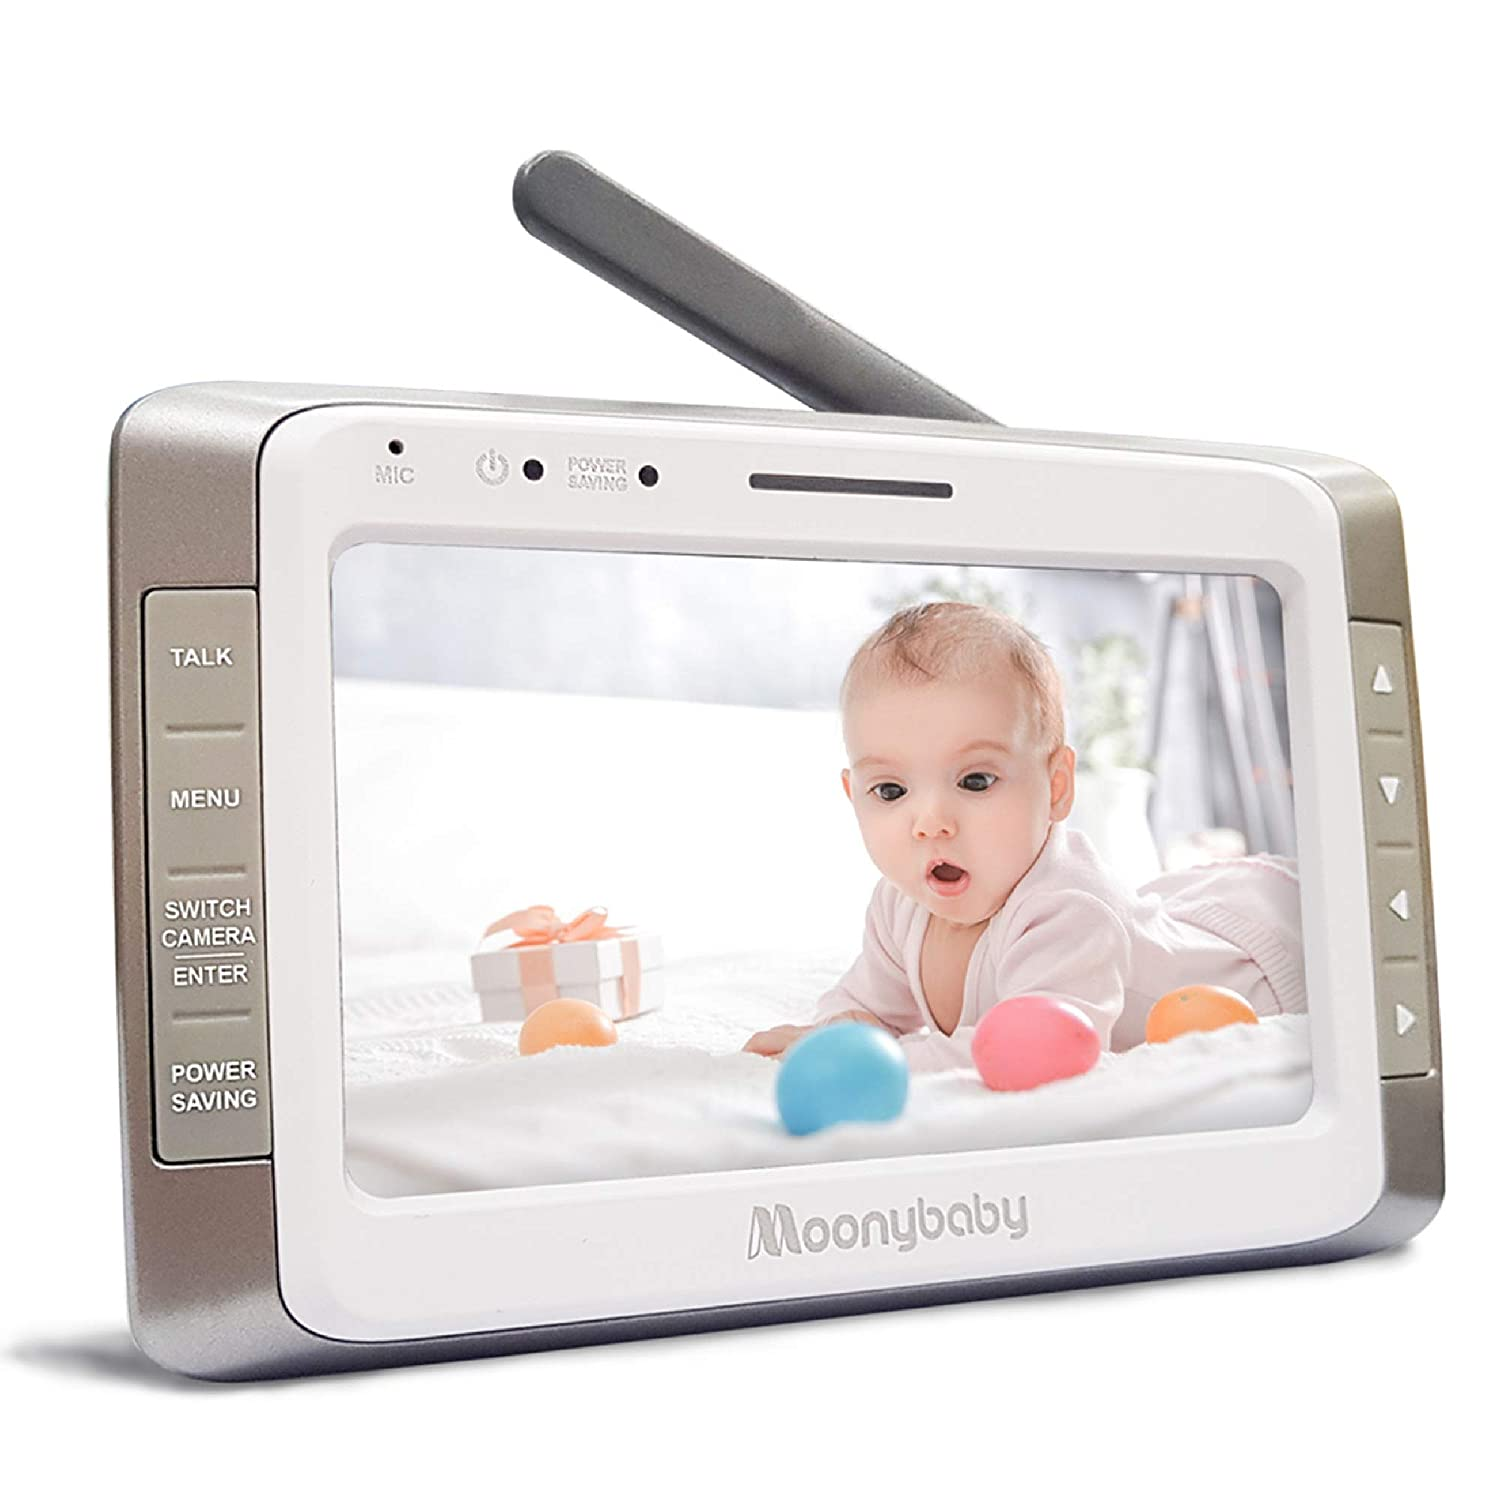 Moonybaby Replacement Monitor for the Model of Moonybaby Trust 50 and 50-2 (MB55935 and MB55935-2T)